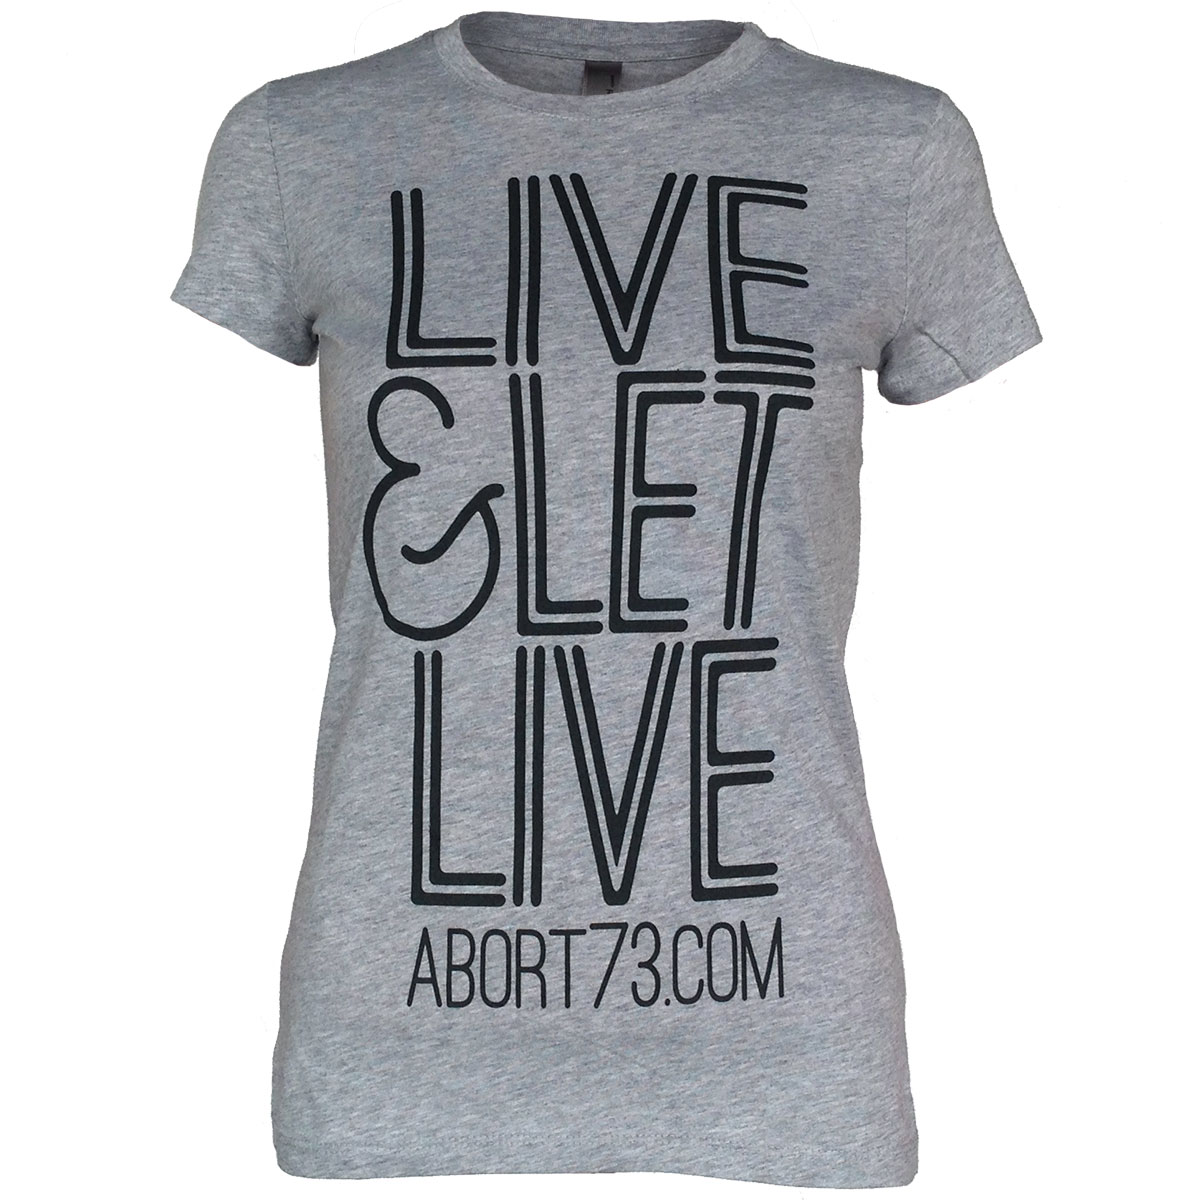 Live & Let Live (Abort73 Girls T-shirt 3300L)